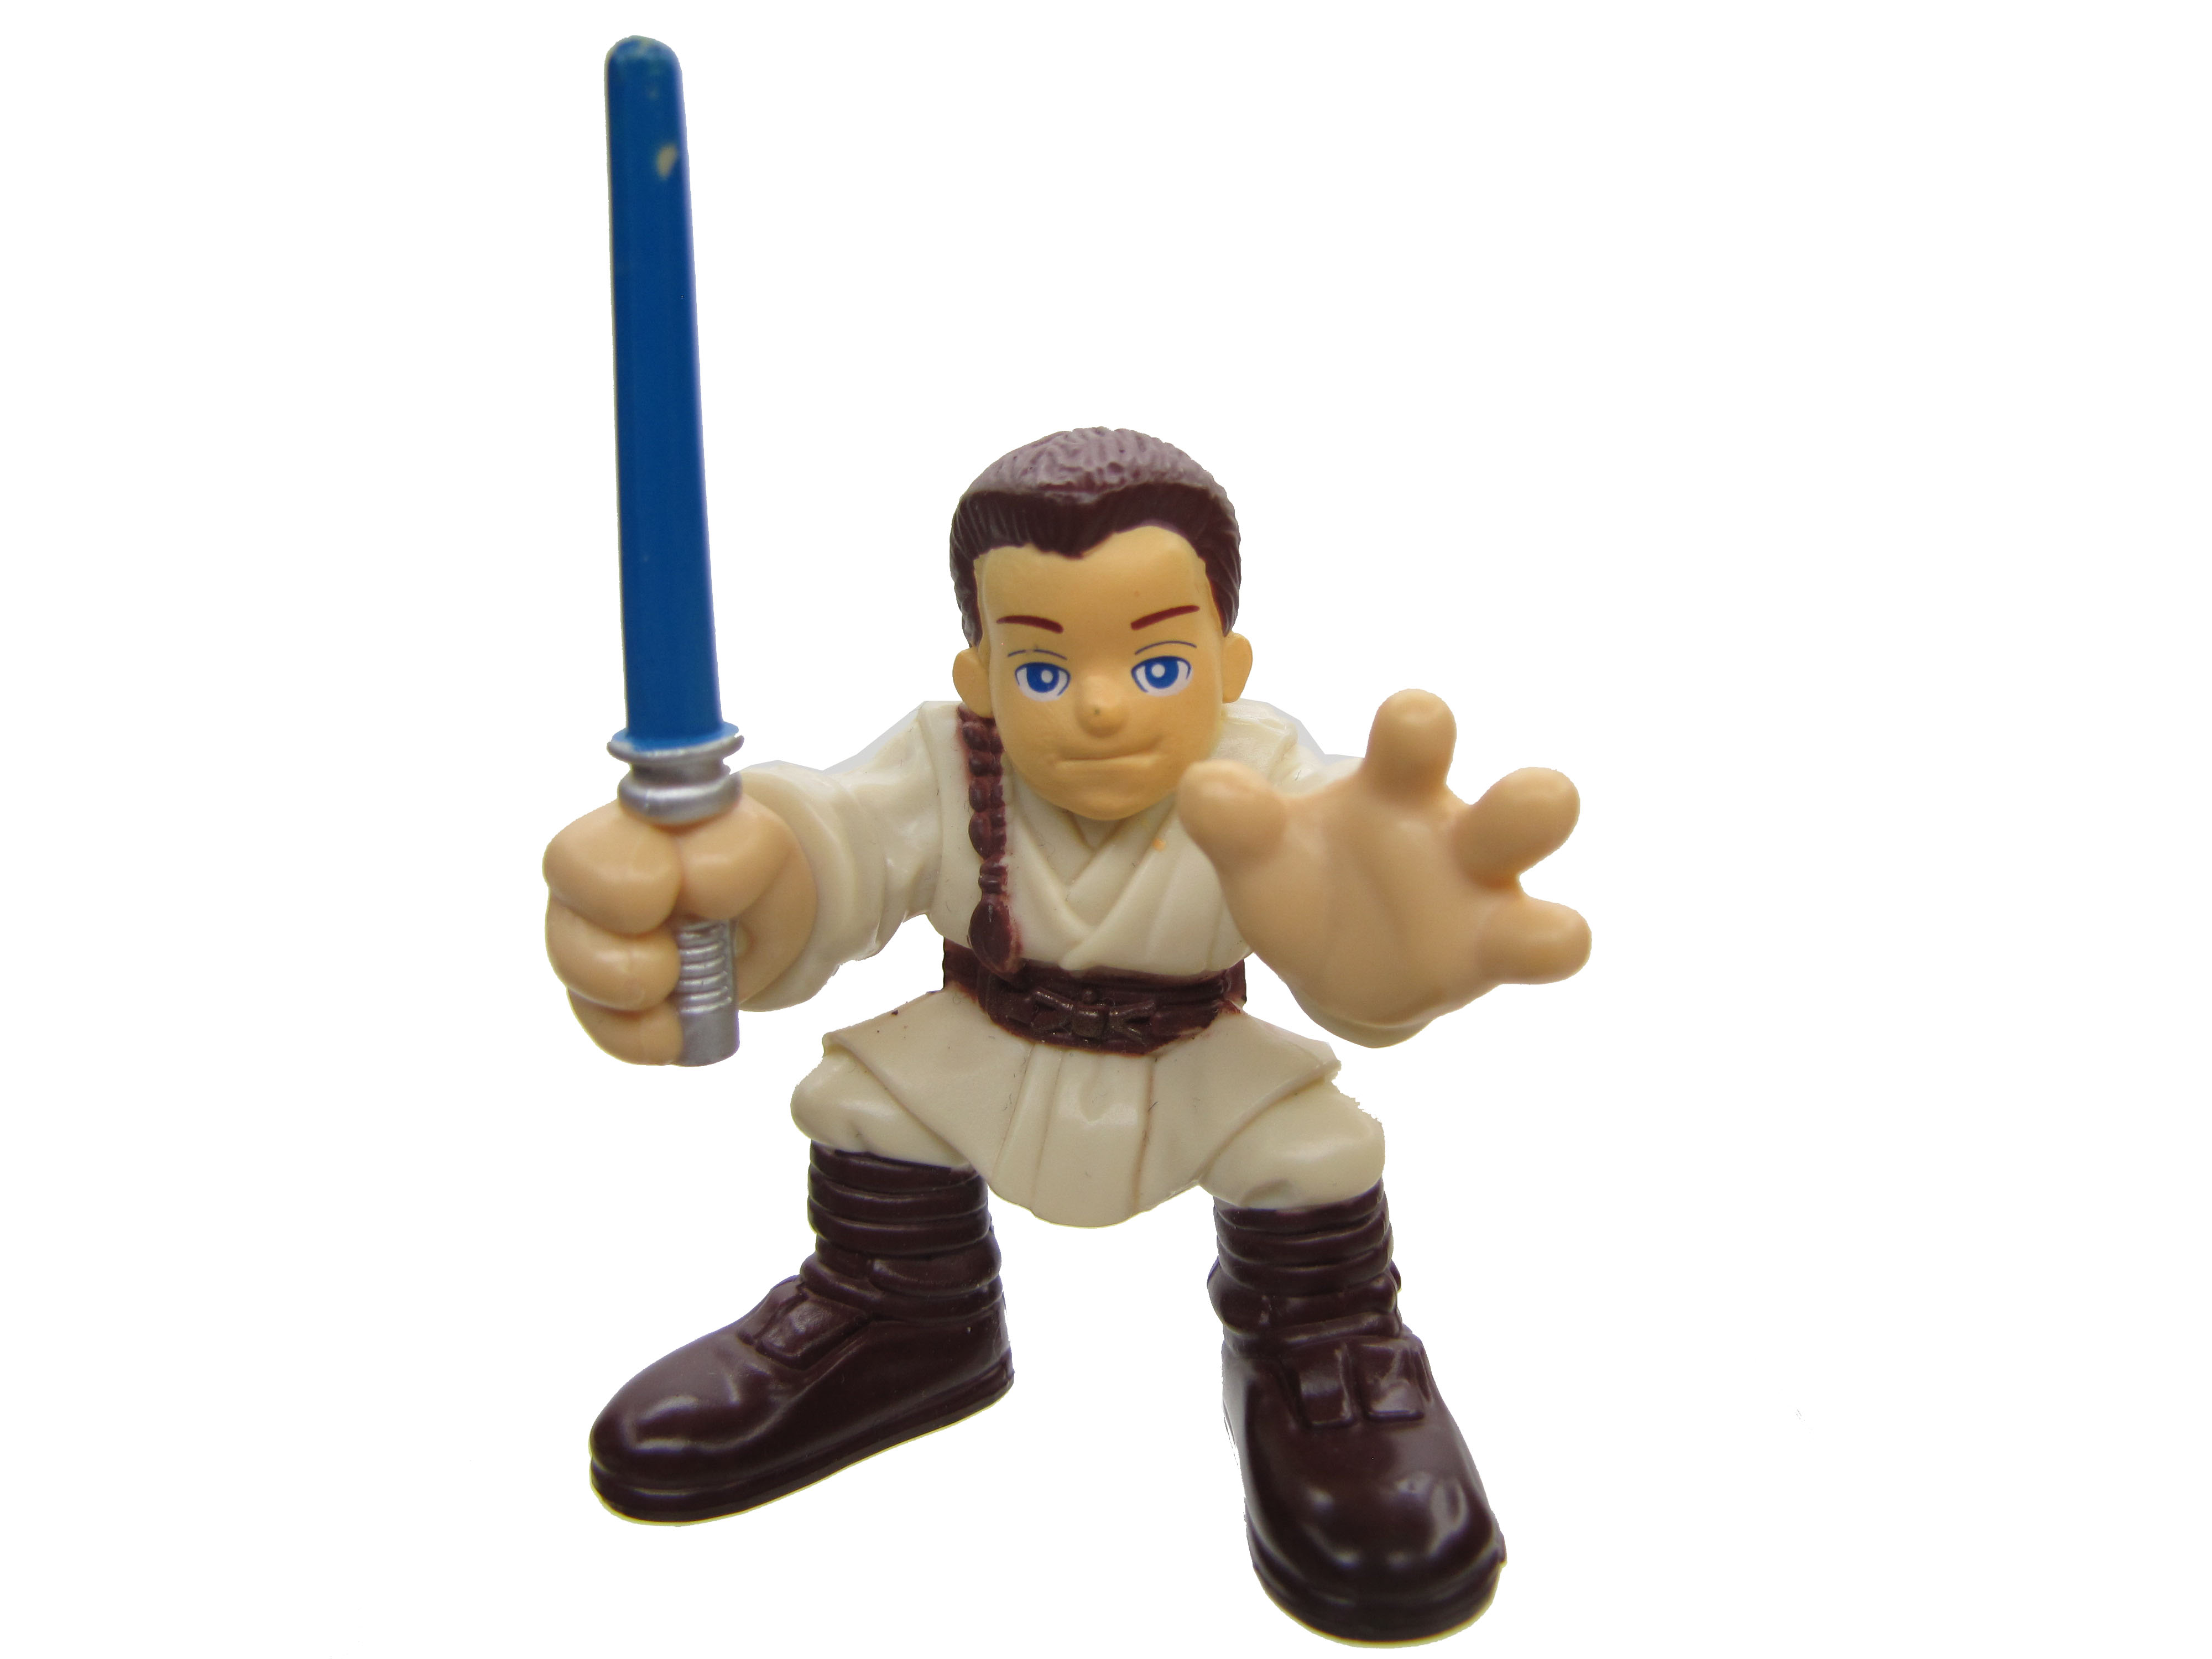 Star Wars Galactic Heroes Obi-Wan Kenobi Battle of Naboo